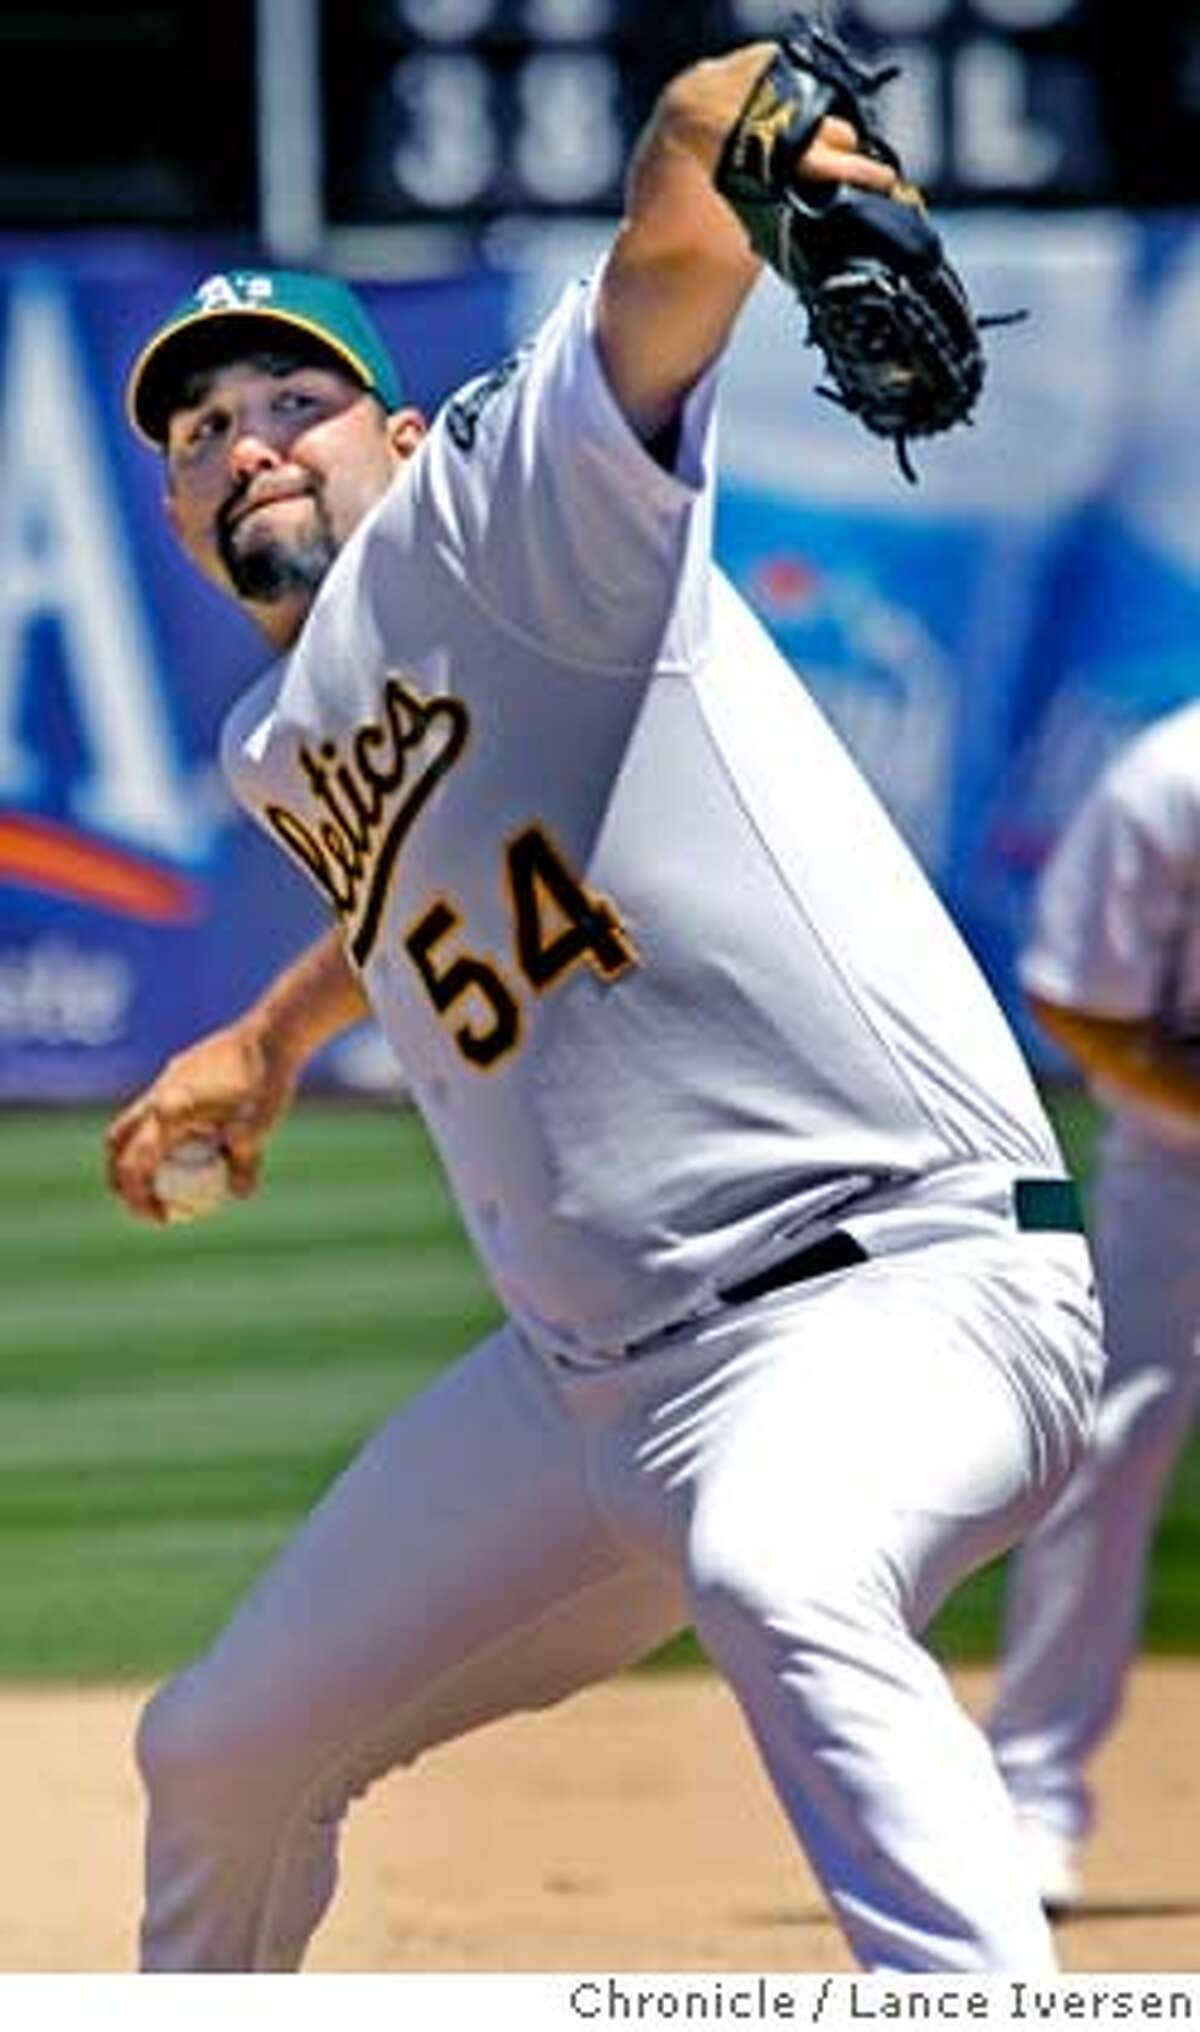 ATHLETICS_53897.JPG A's right hand pitcher Andrew Brown replaced starter Dallas Braden to get the save and win. The Oakland Athletics defeated The Detroit Tigers 3-2. (AUG1) Lance Iversen/The Chronicle (cq) SUBJECT 8/1/07,in OAKLAND. CA.